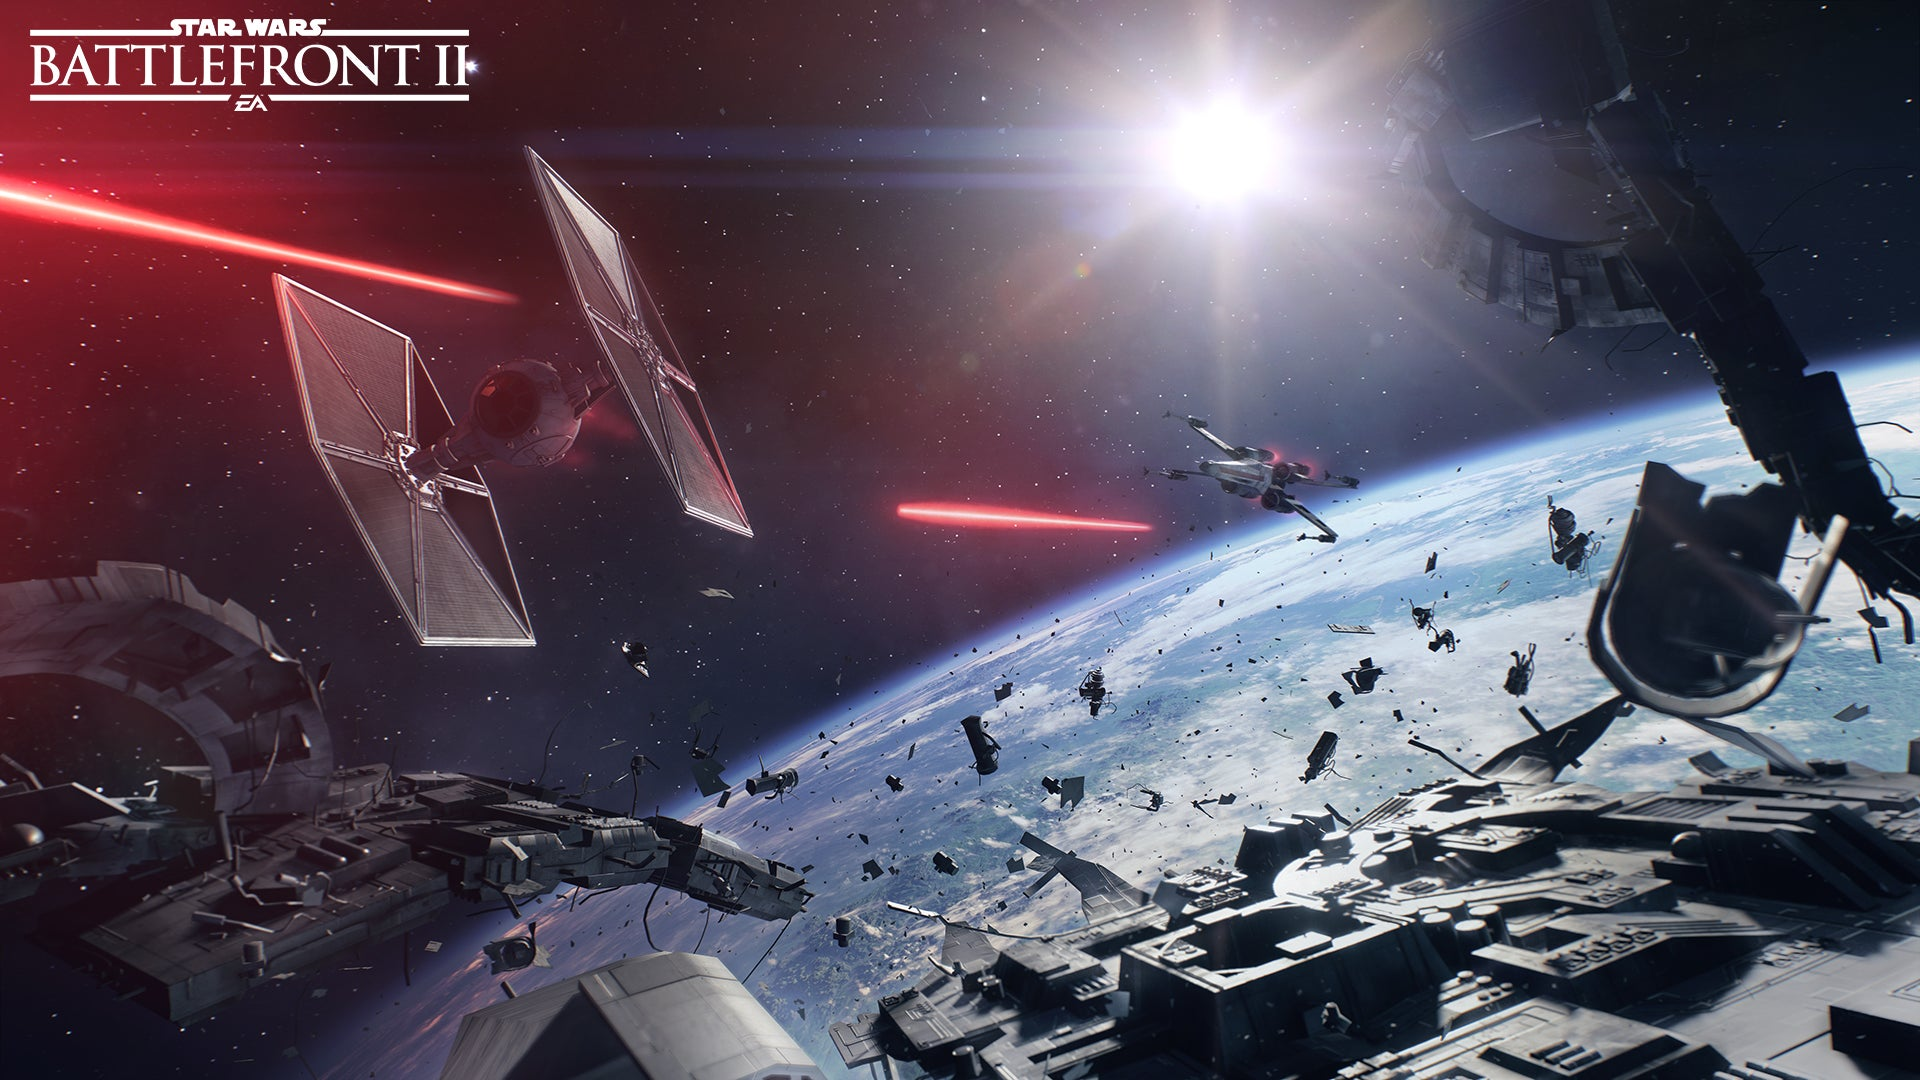 Fans revolt against EA's Star Wars in-game payment system